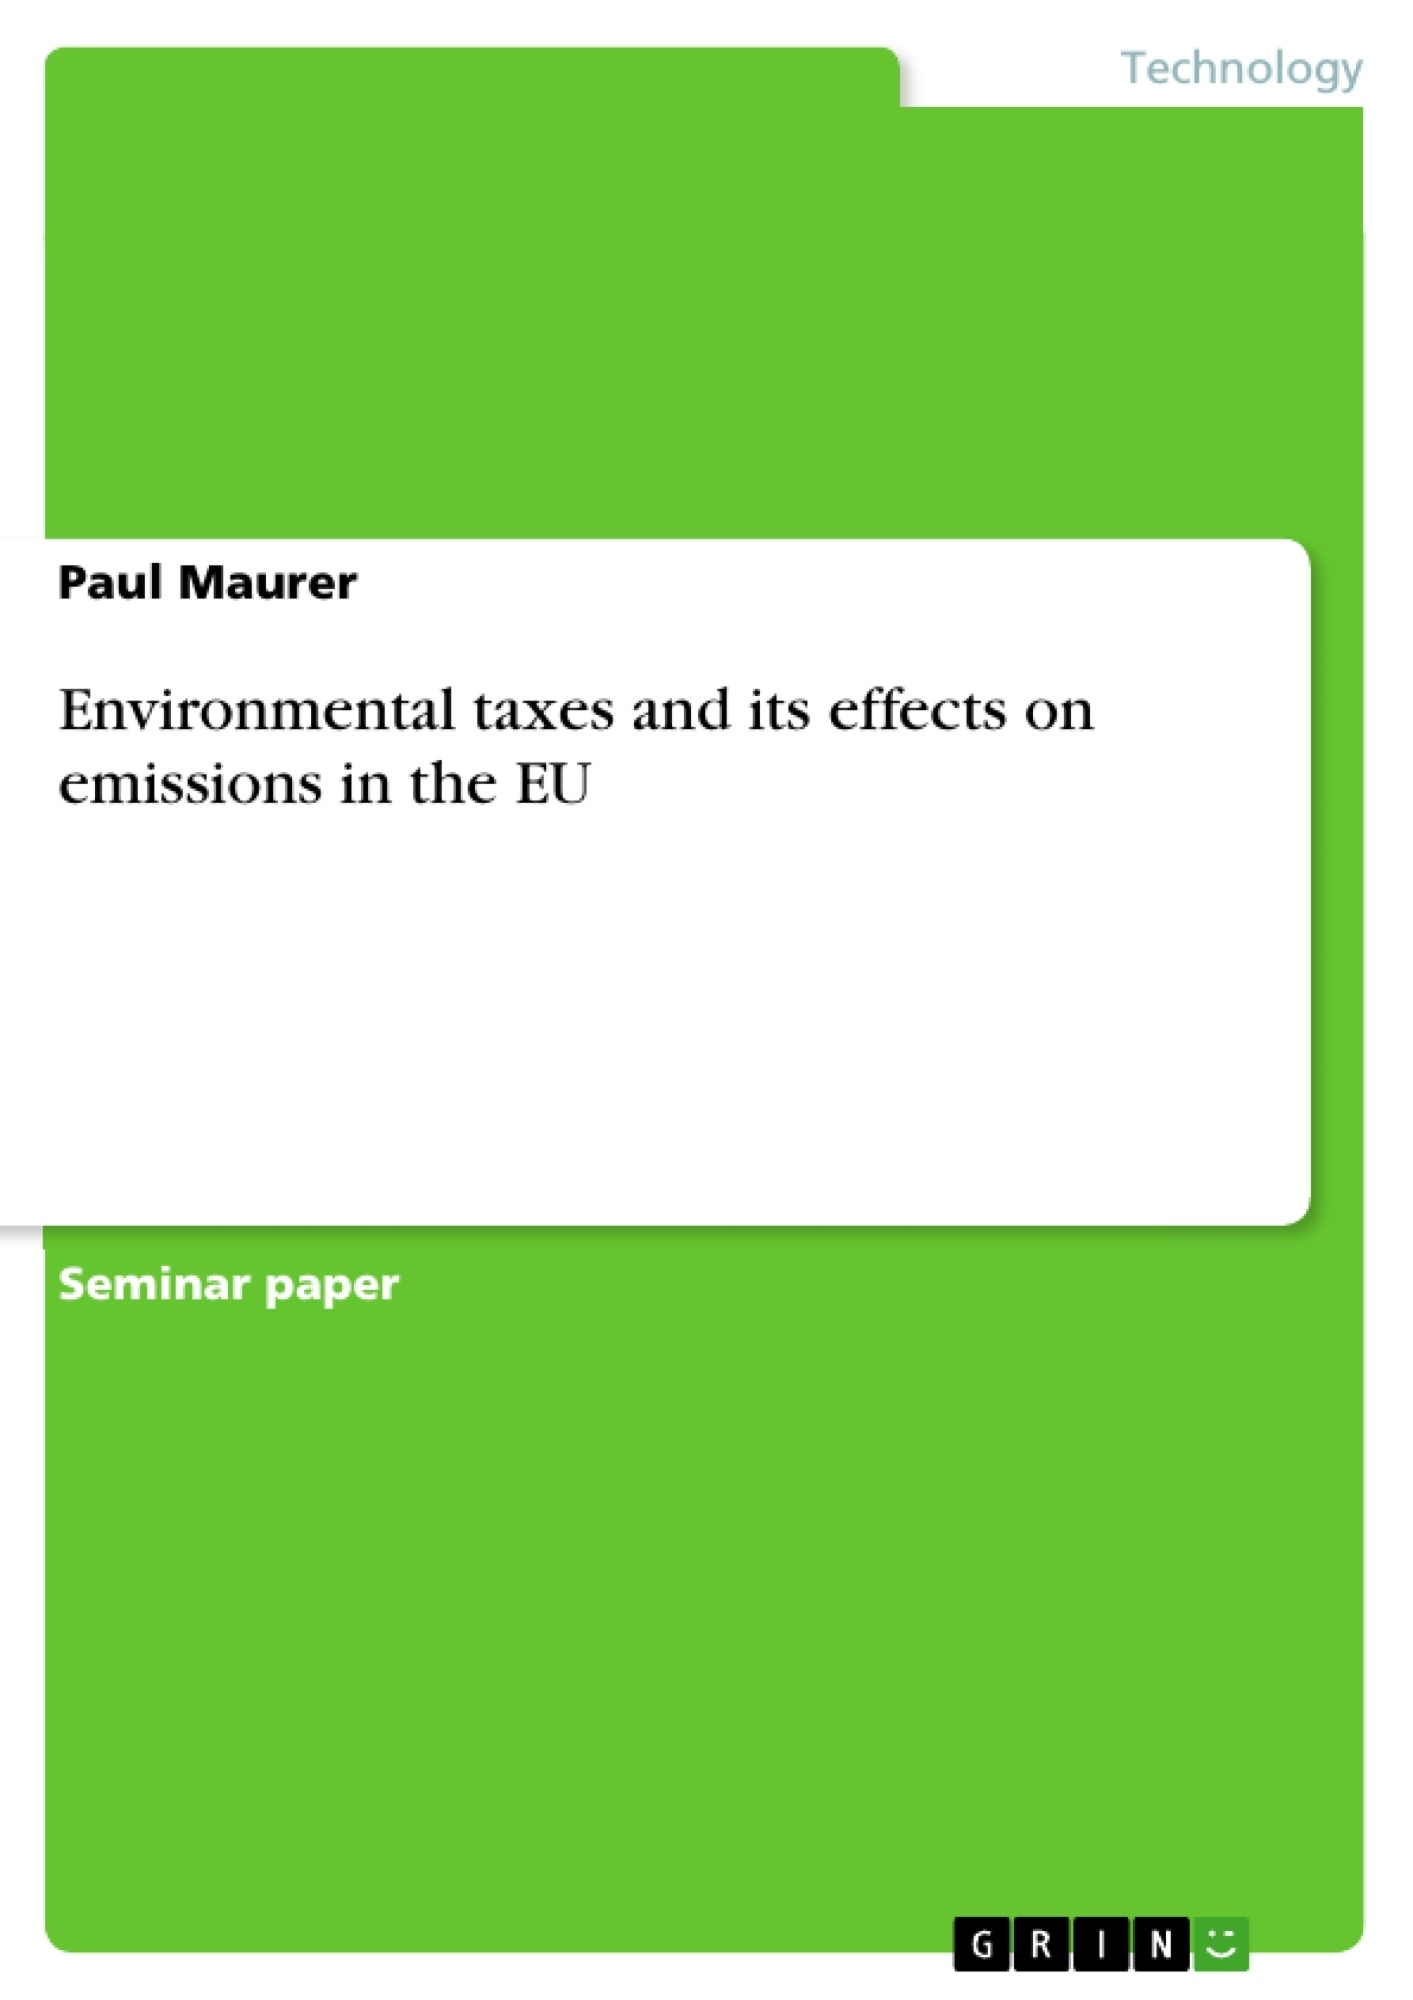 Title: Environmental taxes and its effects on emissions in the EU